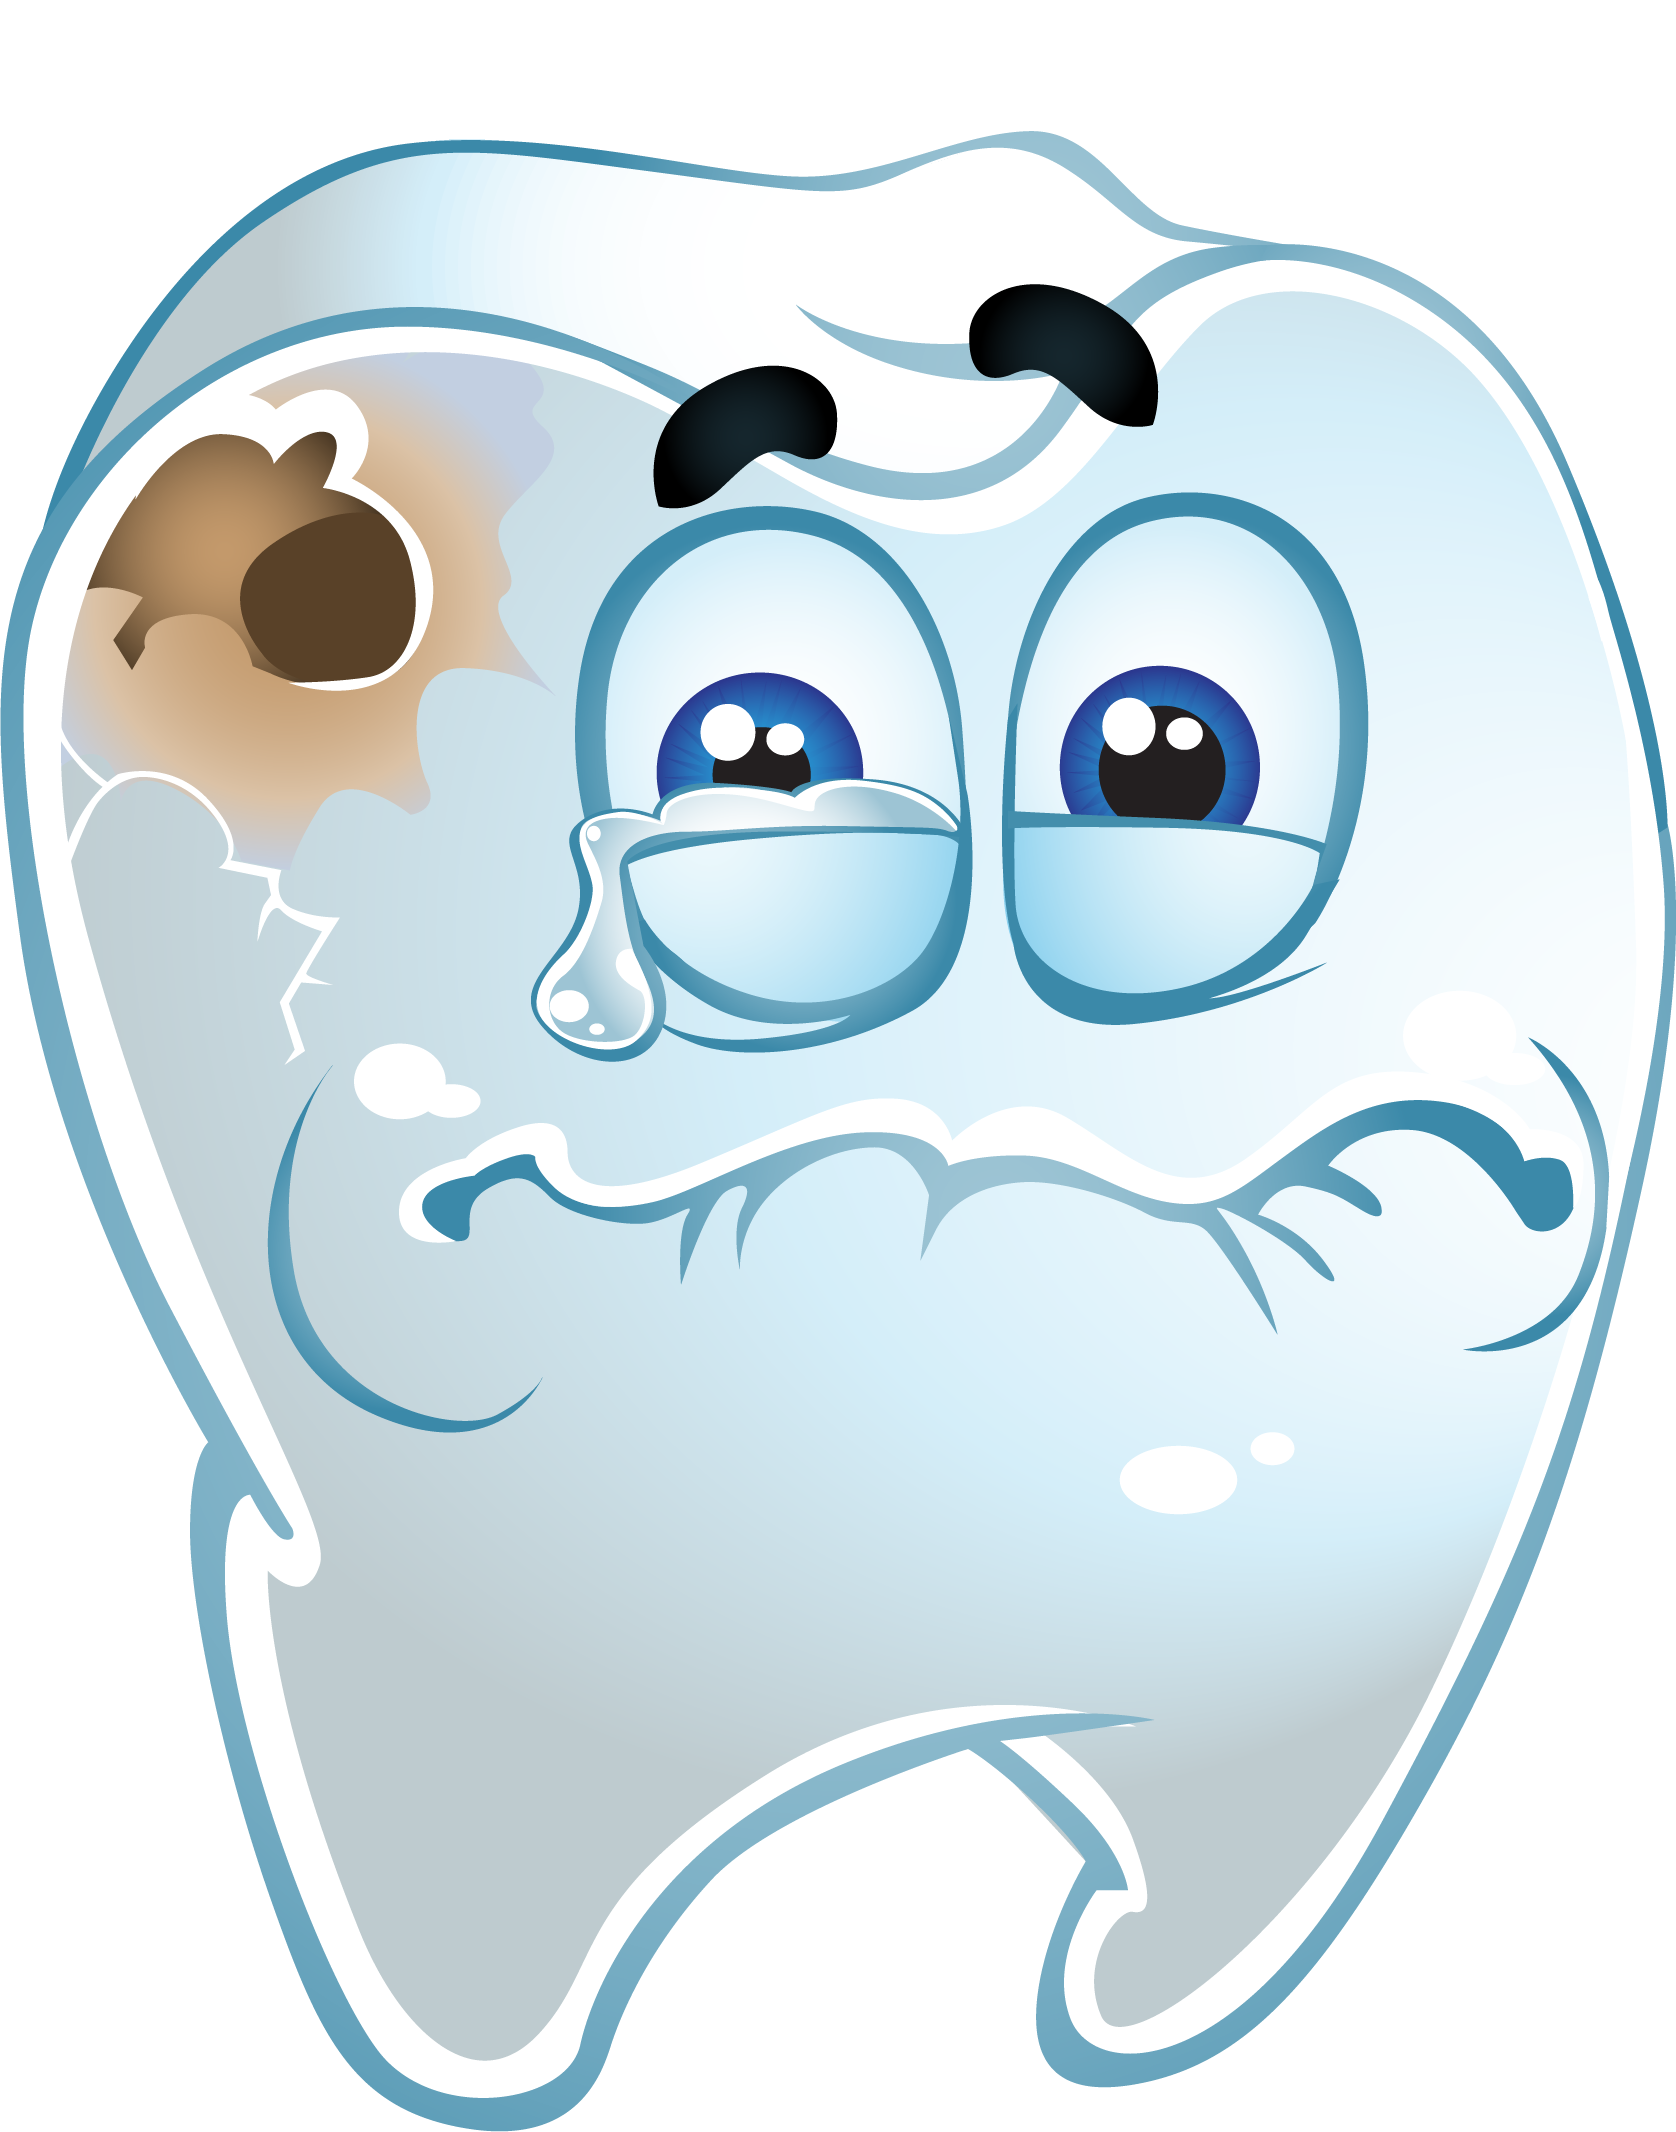 Tooth decay dentistry public. Dentist clipart dental caries